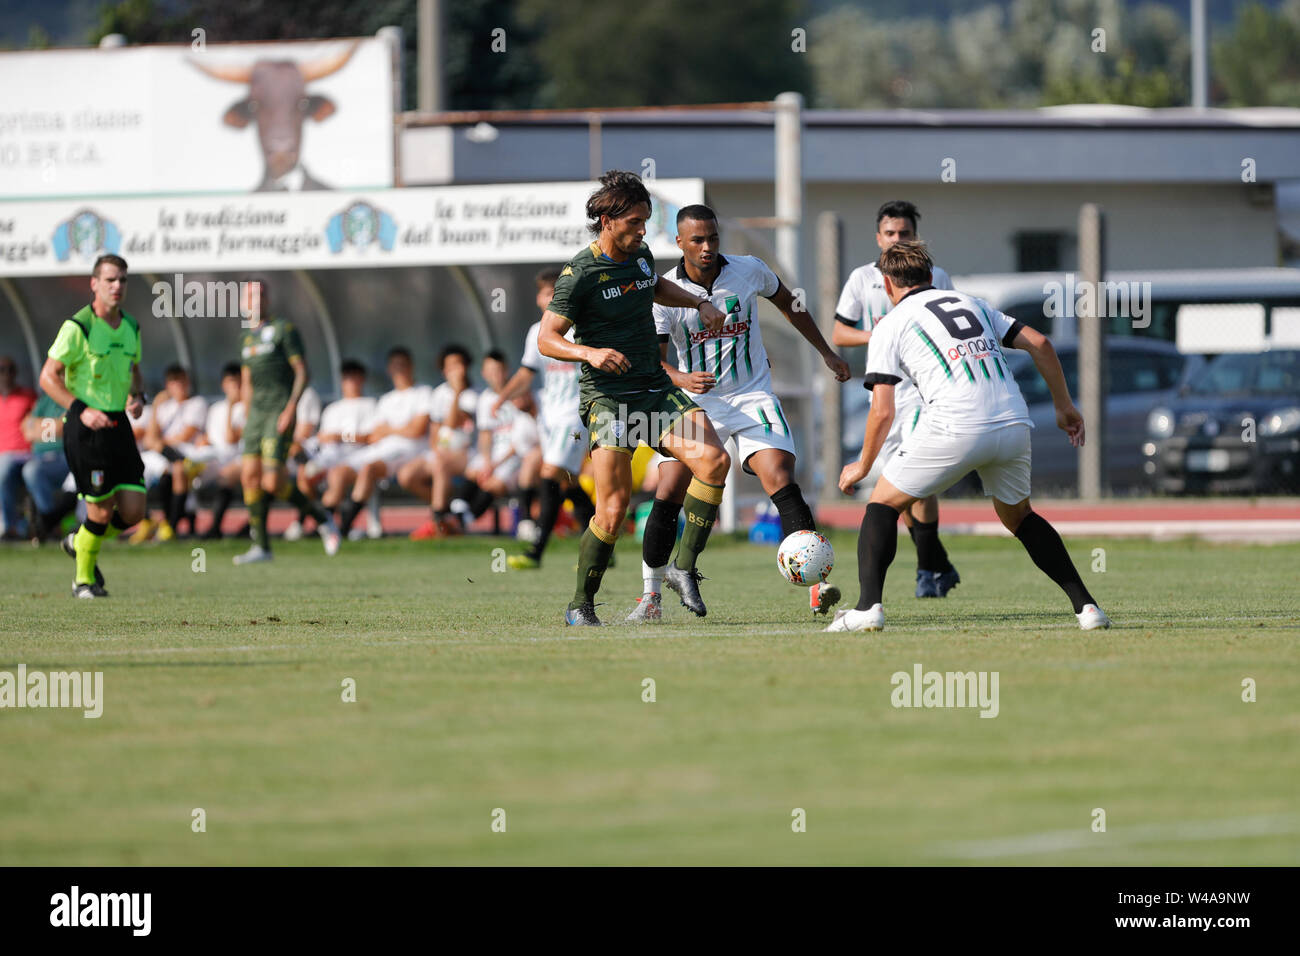 Darfo Boario, Italia. 21st July, 2019. Foto Stefano Nicoli/LaPresse21 luglio 2019 Darfo Boario (Bs), Italia sport calcio Amichevole Brescia Darfo Pre Campionato di calcio Serie A 2019/2020 - Nella foto: Ernesto Torregrossa Photo Stefano Nicoli/LaPresse July 20, 2019 Darfo Boario (Bs), Italy sport soccer Friendly match Brescia Darfo League A TIM 2019/2020 - In the pic:Ernesto Torregrossa Credit: LaPresse/Alamy Live News - Stock Image